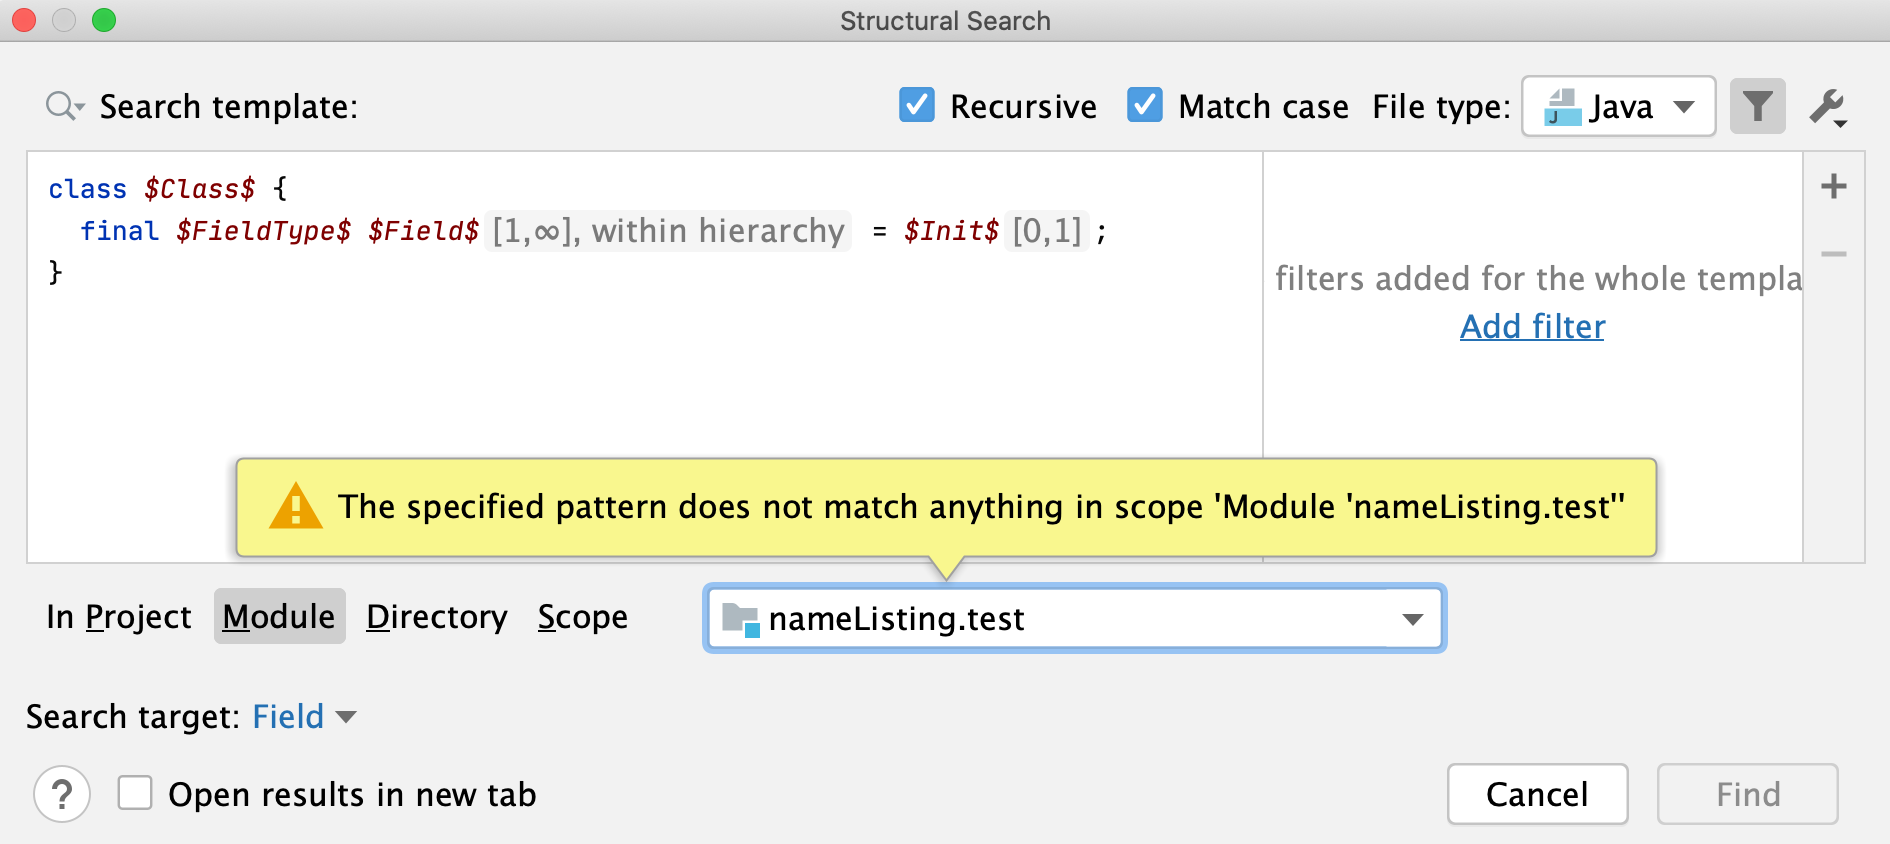 Structural Search dialog: module scope